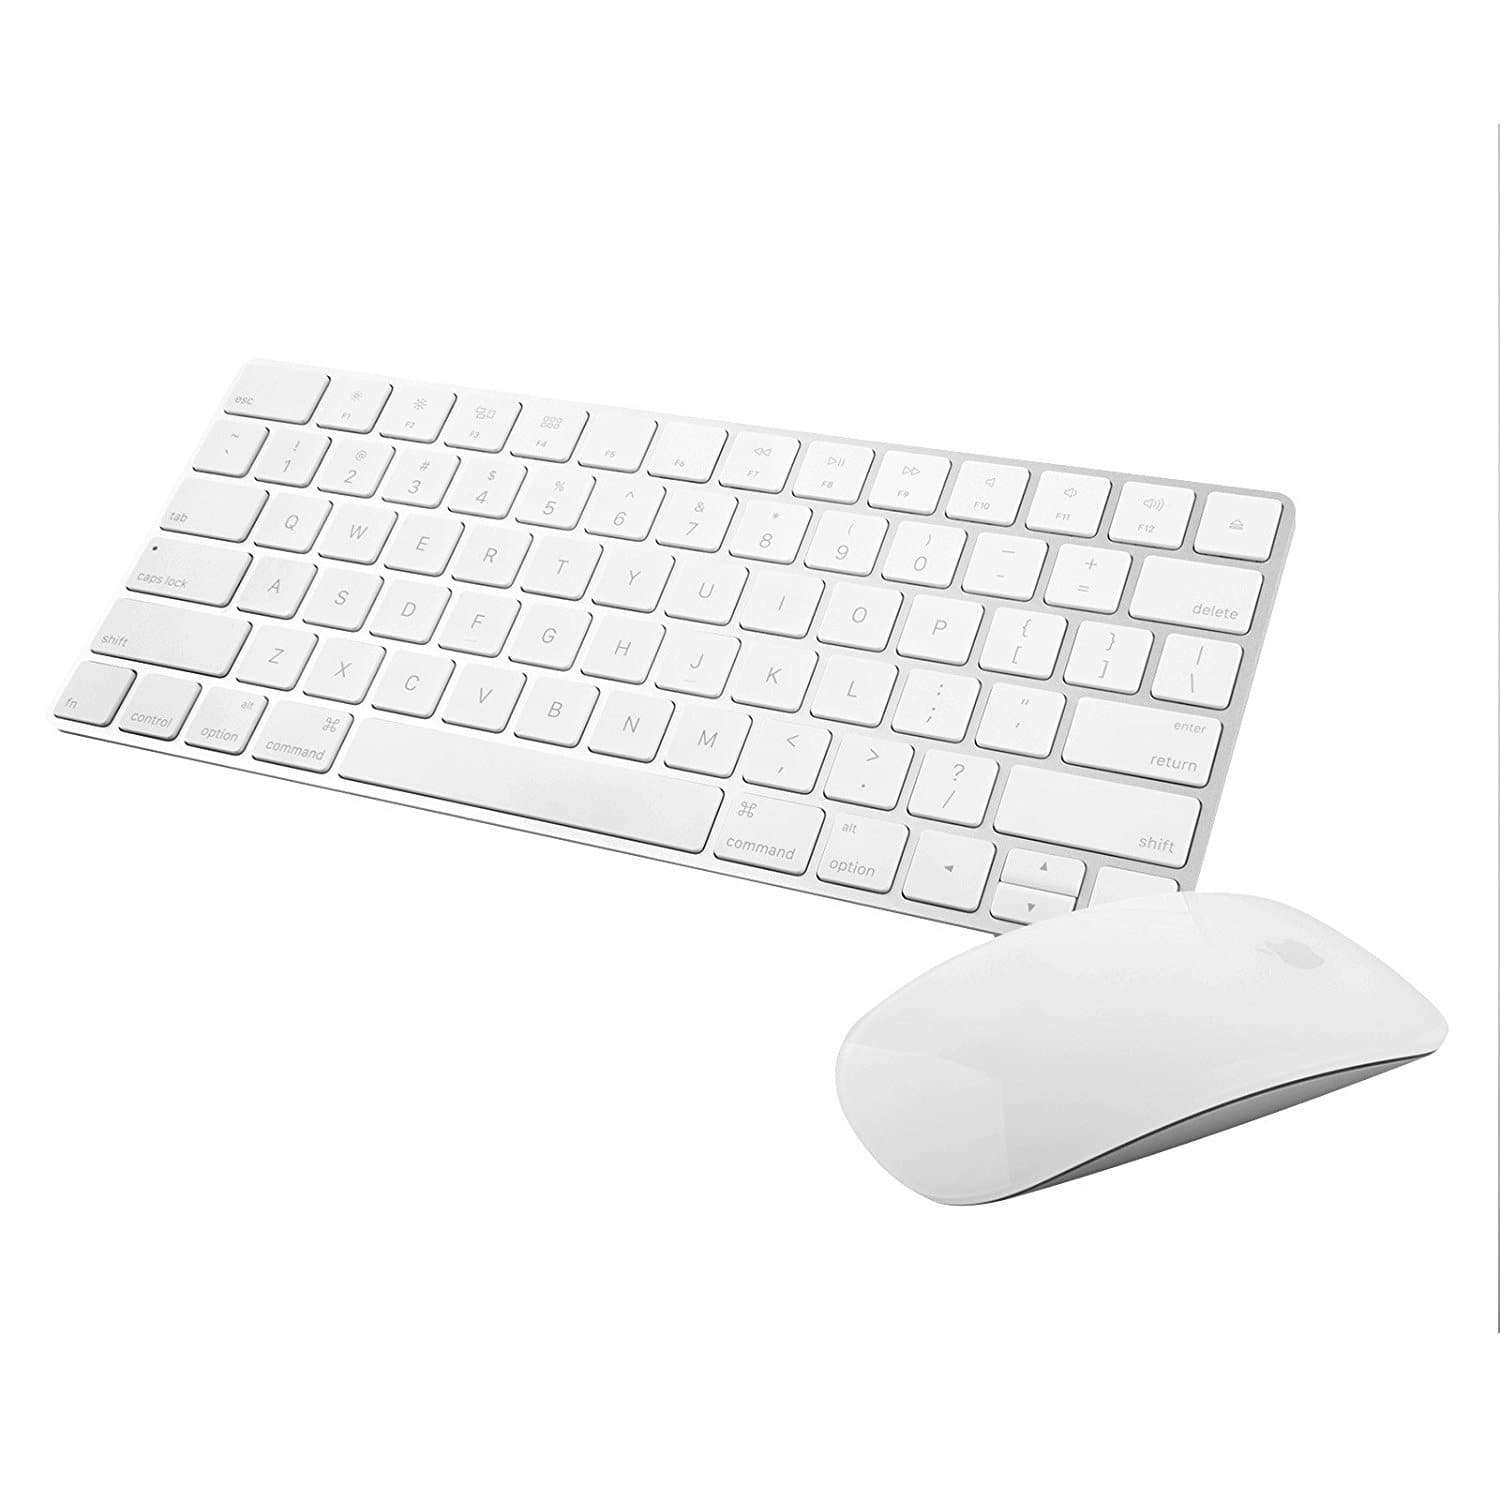 Apple wireless keyboard deals